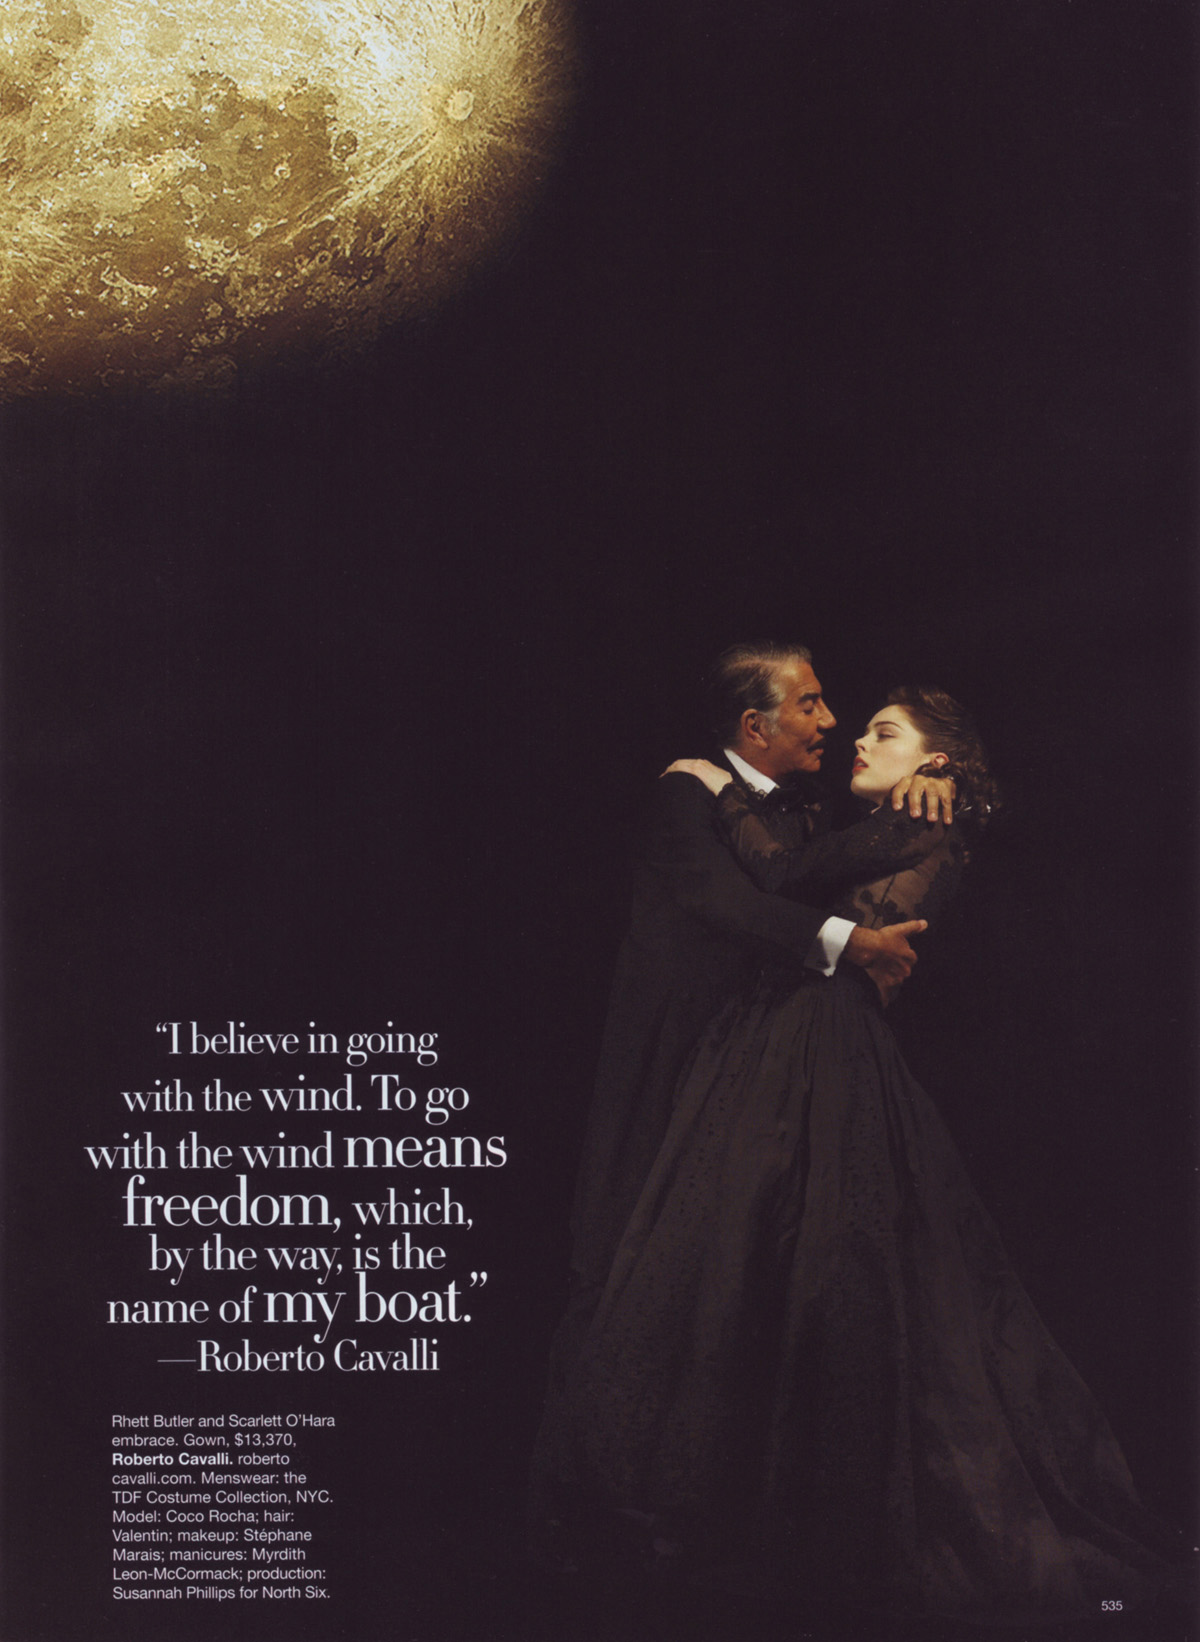 Roberto Cavalli as Rhett Butler and Coco Rocha as Scarlett O'Hara from <i>Gone with the Wind</i>.